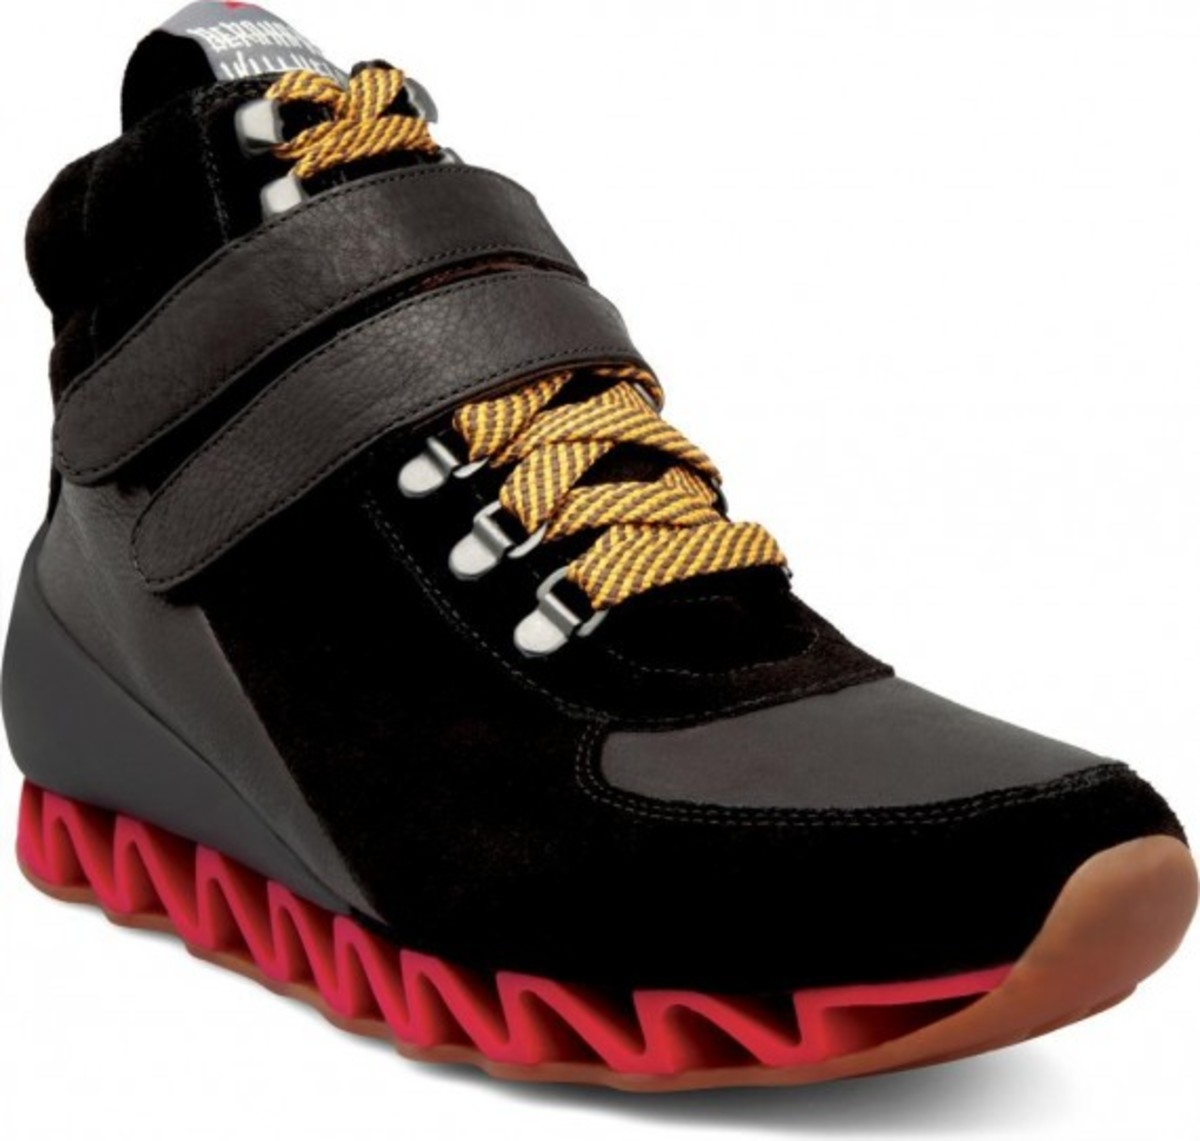 bernhard-willhelm-x-camper-together-fallwinter-2012-sneakers-collection-2